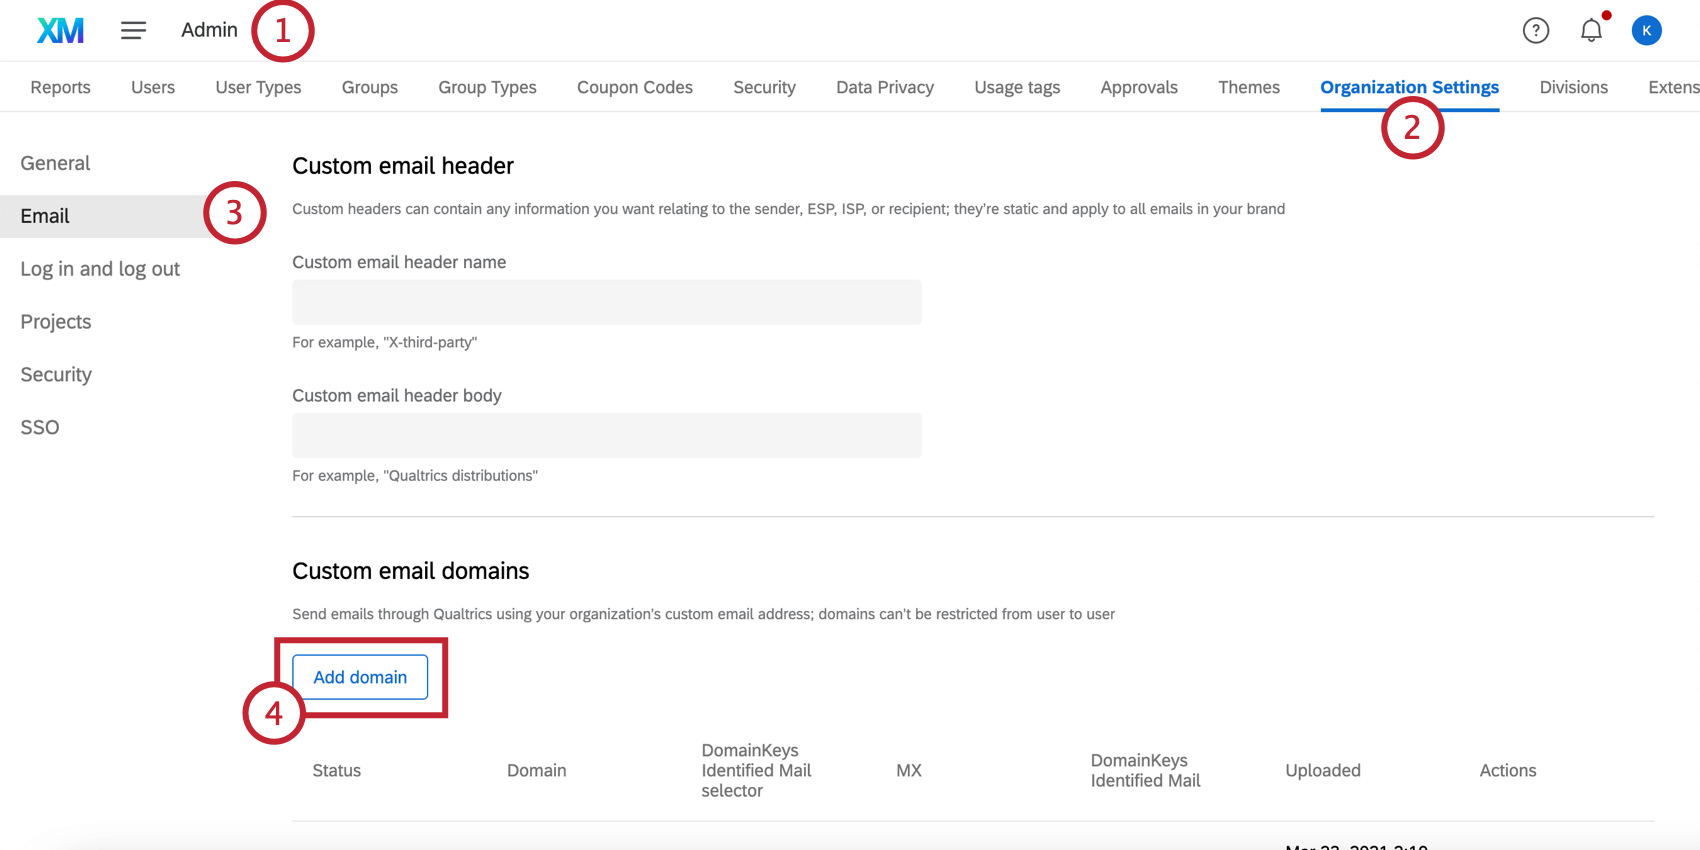 Adding a custom domain in the Email tab of the organization settings